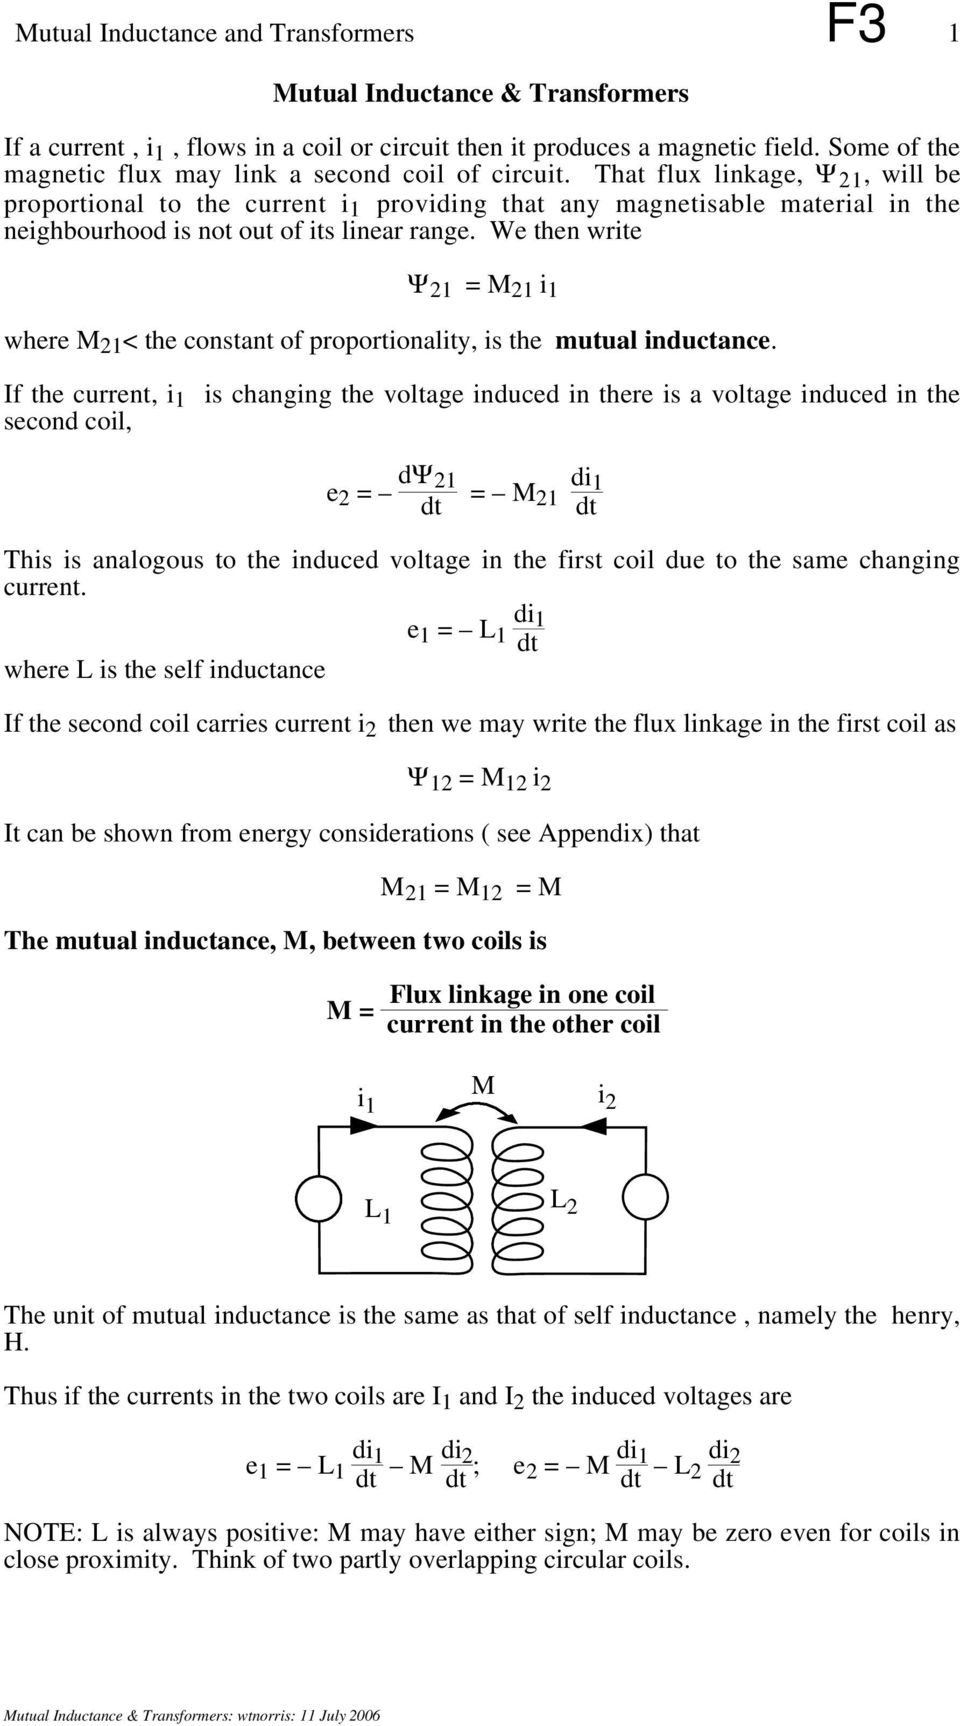 Mutual Inductance And Transformers F3 3 R L O Pdf If We Increase The In An Rl Circuit What Happens To That Flux Linkage 1 Will Be Proportional Current I Providing